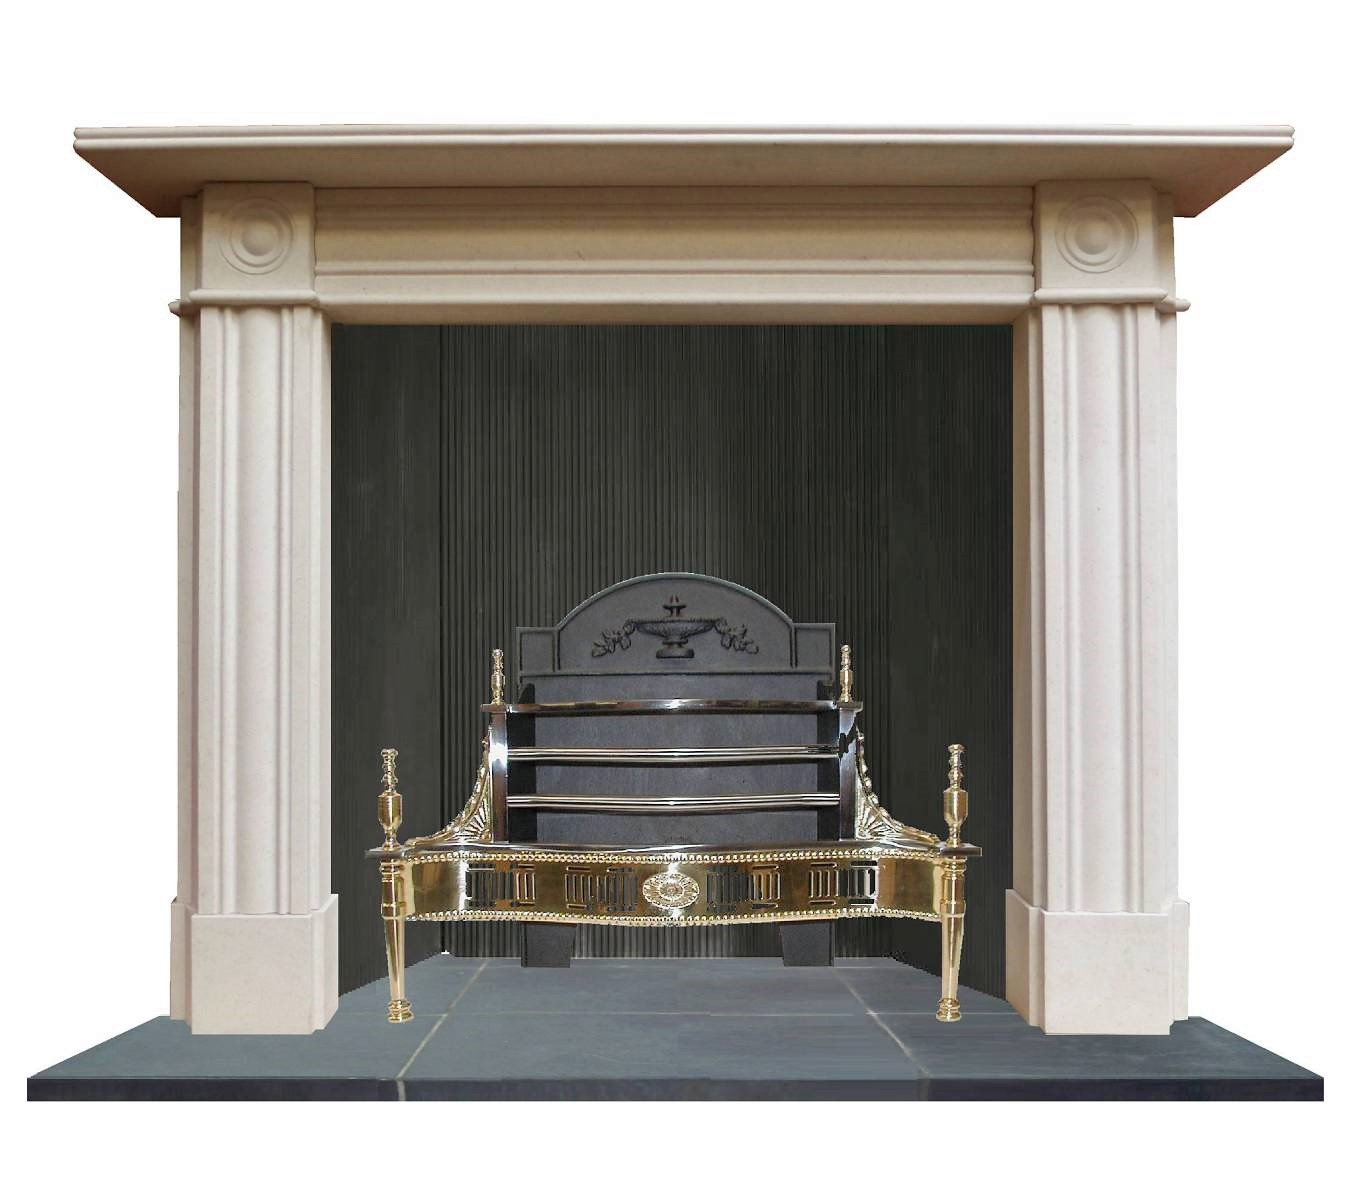 regency bullseye period limestone fireplace surround